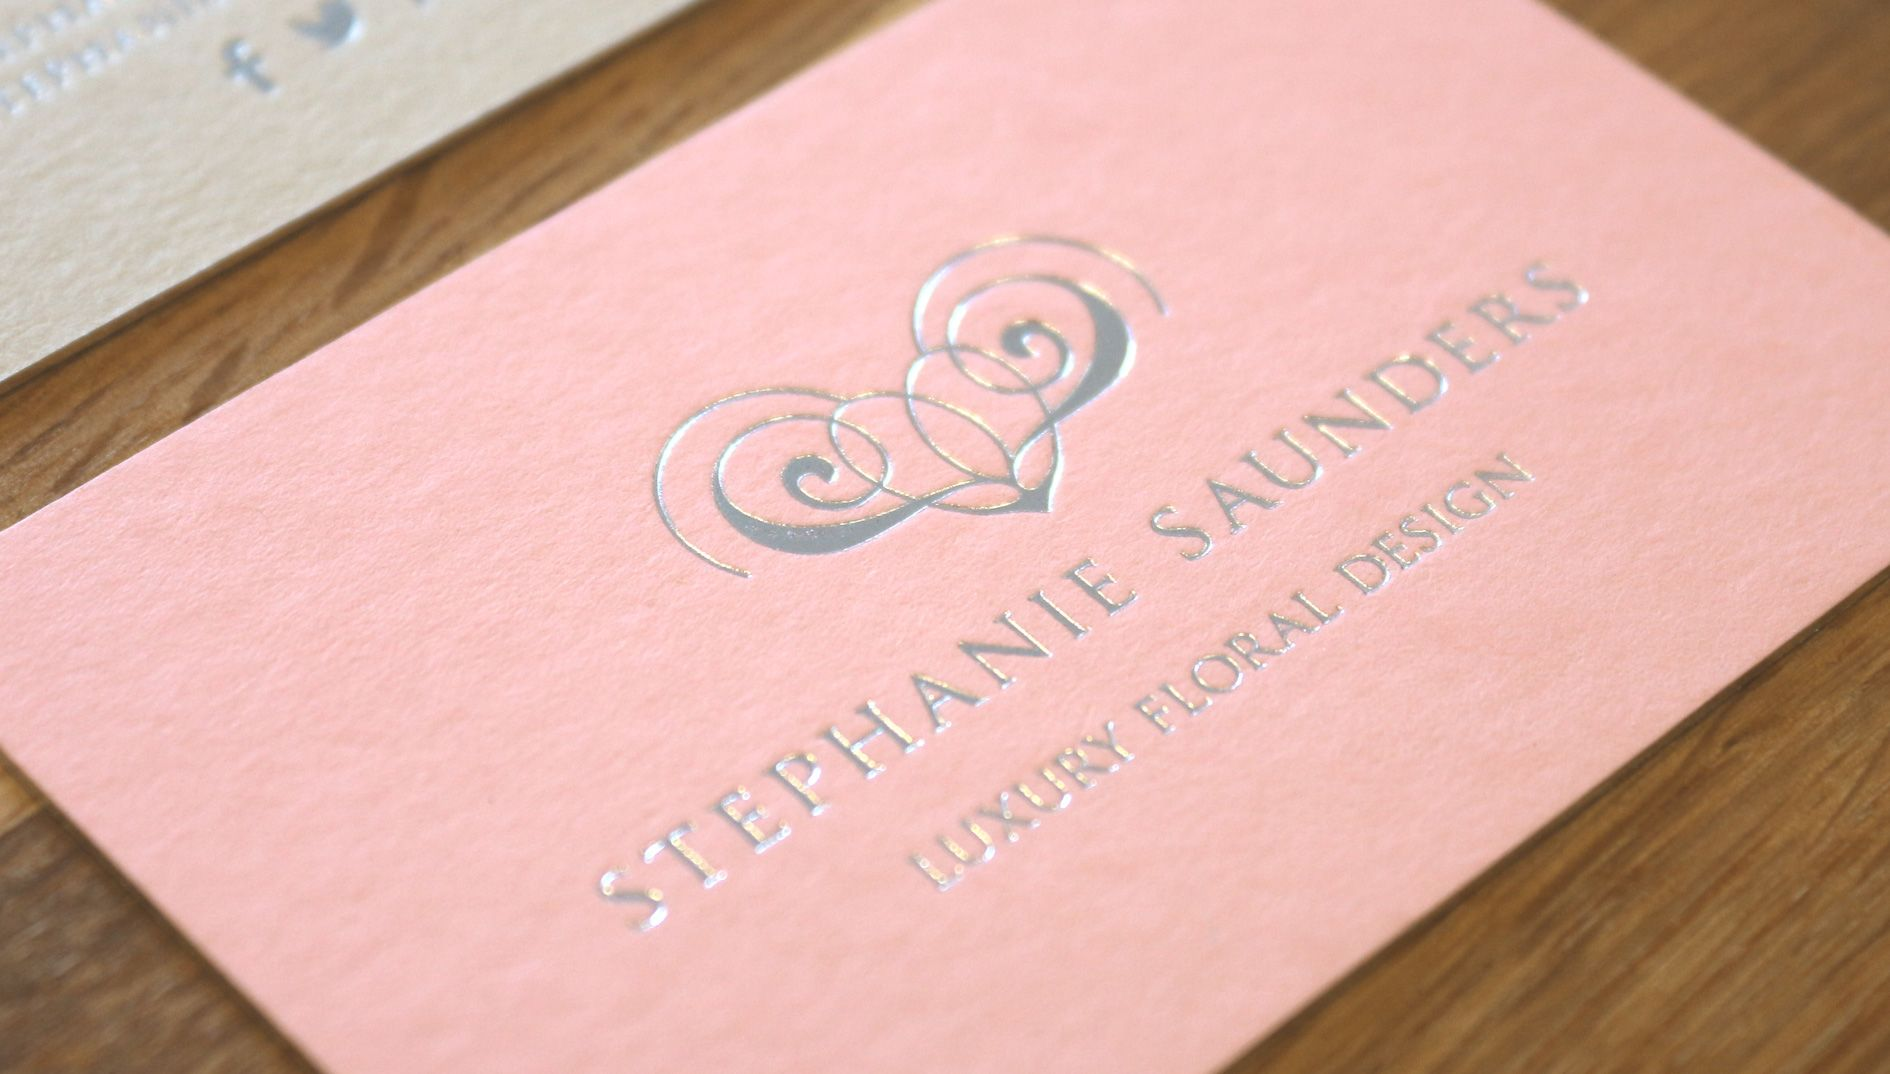 Stephanie saunders flowers luxury floral design business stephanie saunders flowers luxury floral design business stationery business cards foil print soft pink by leaff design worcester uk reheart Choice Image